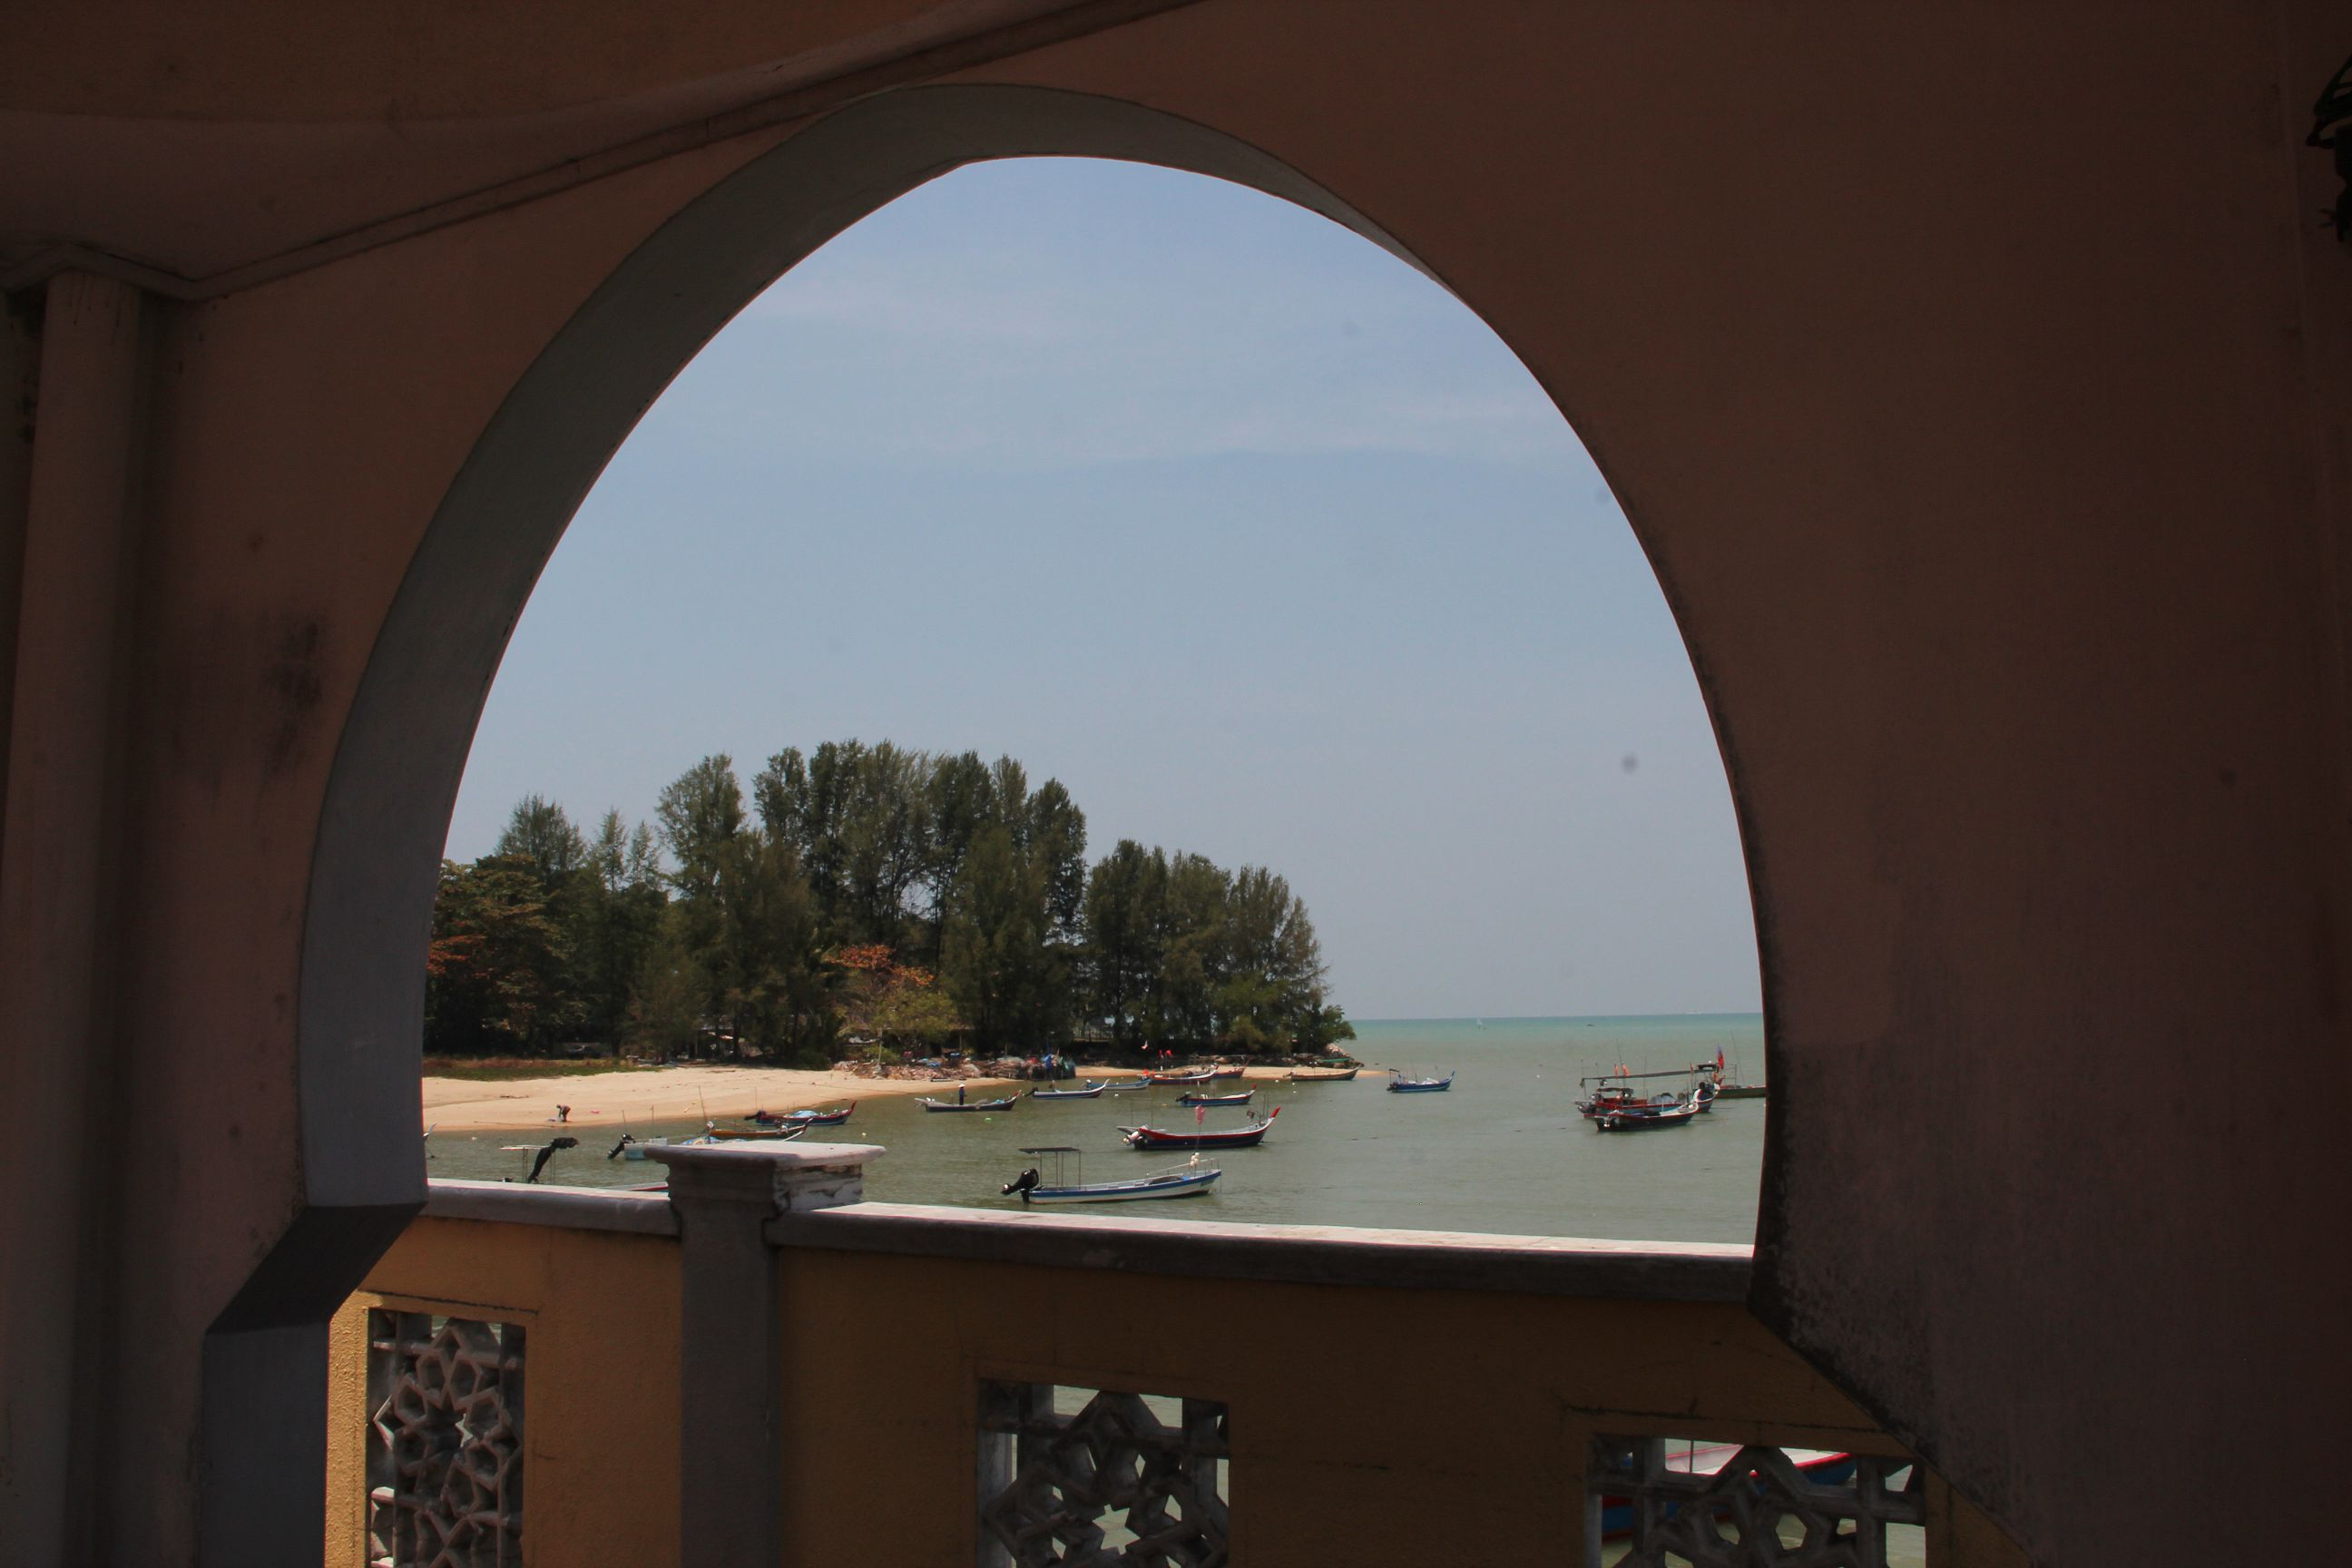 View from the floating mosque